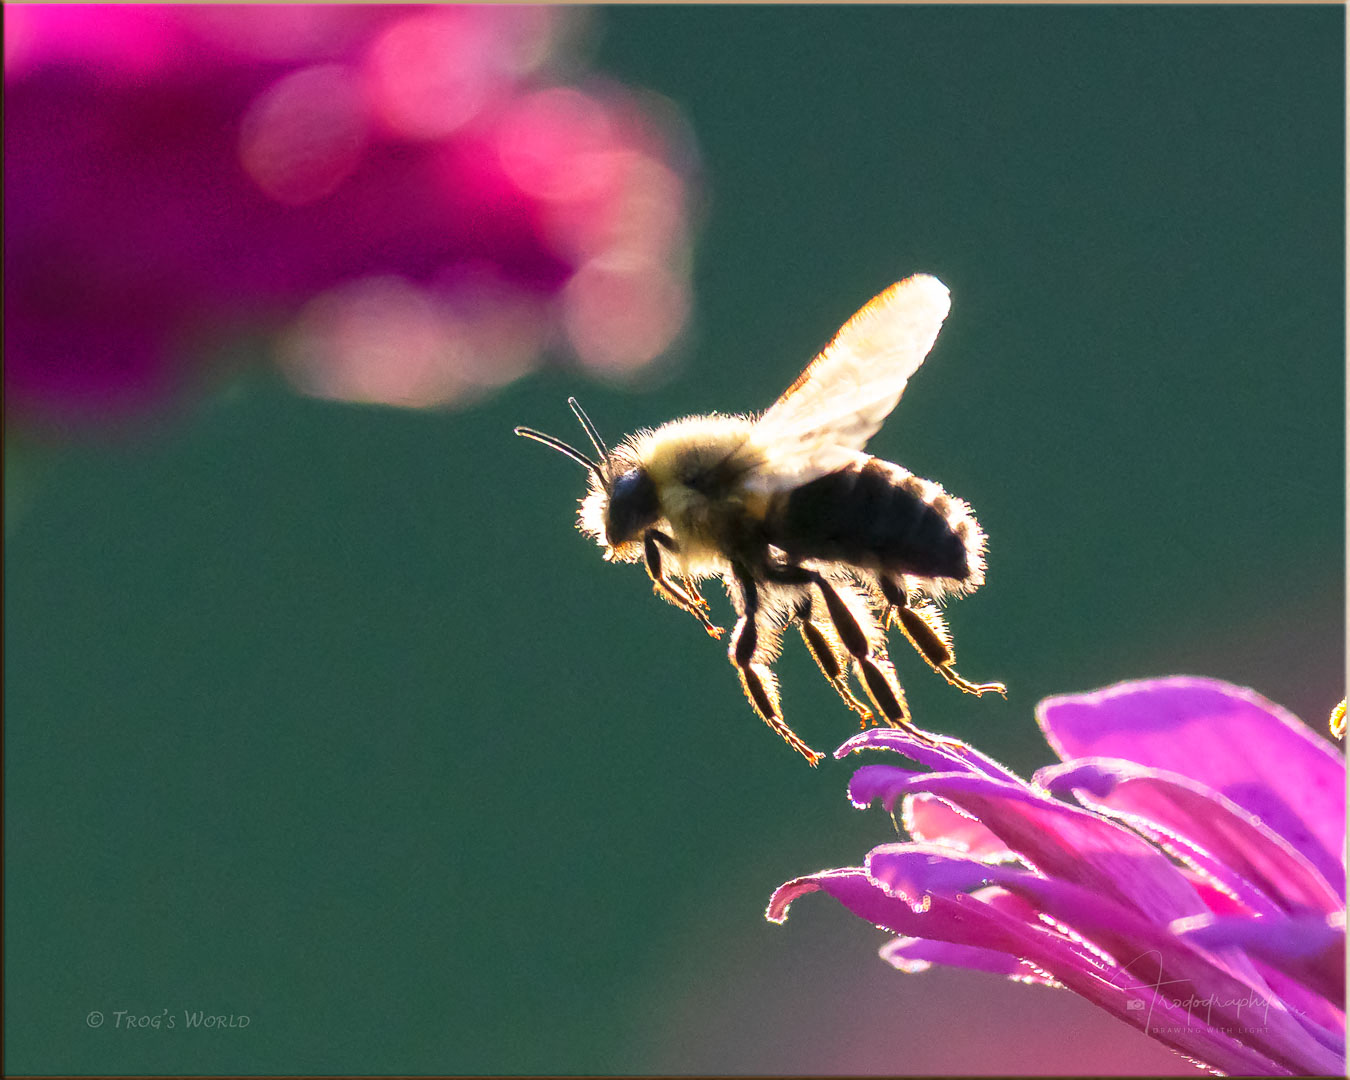 Bumblebee lit up by the evening sun